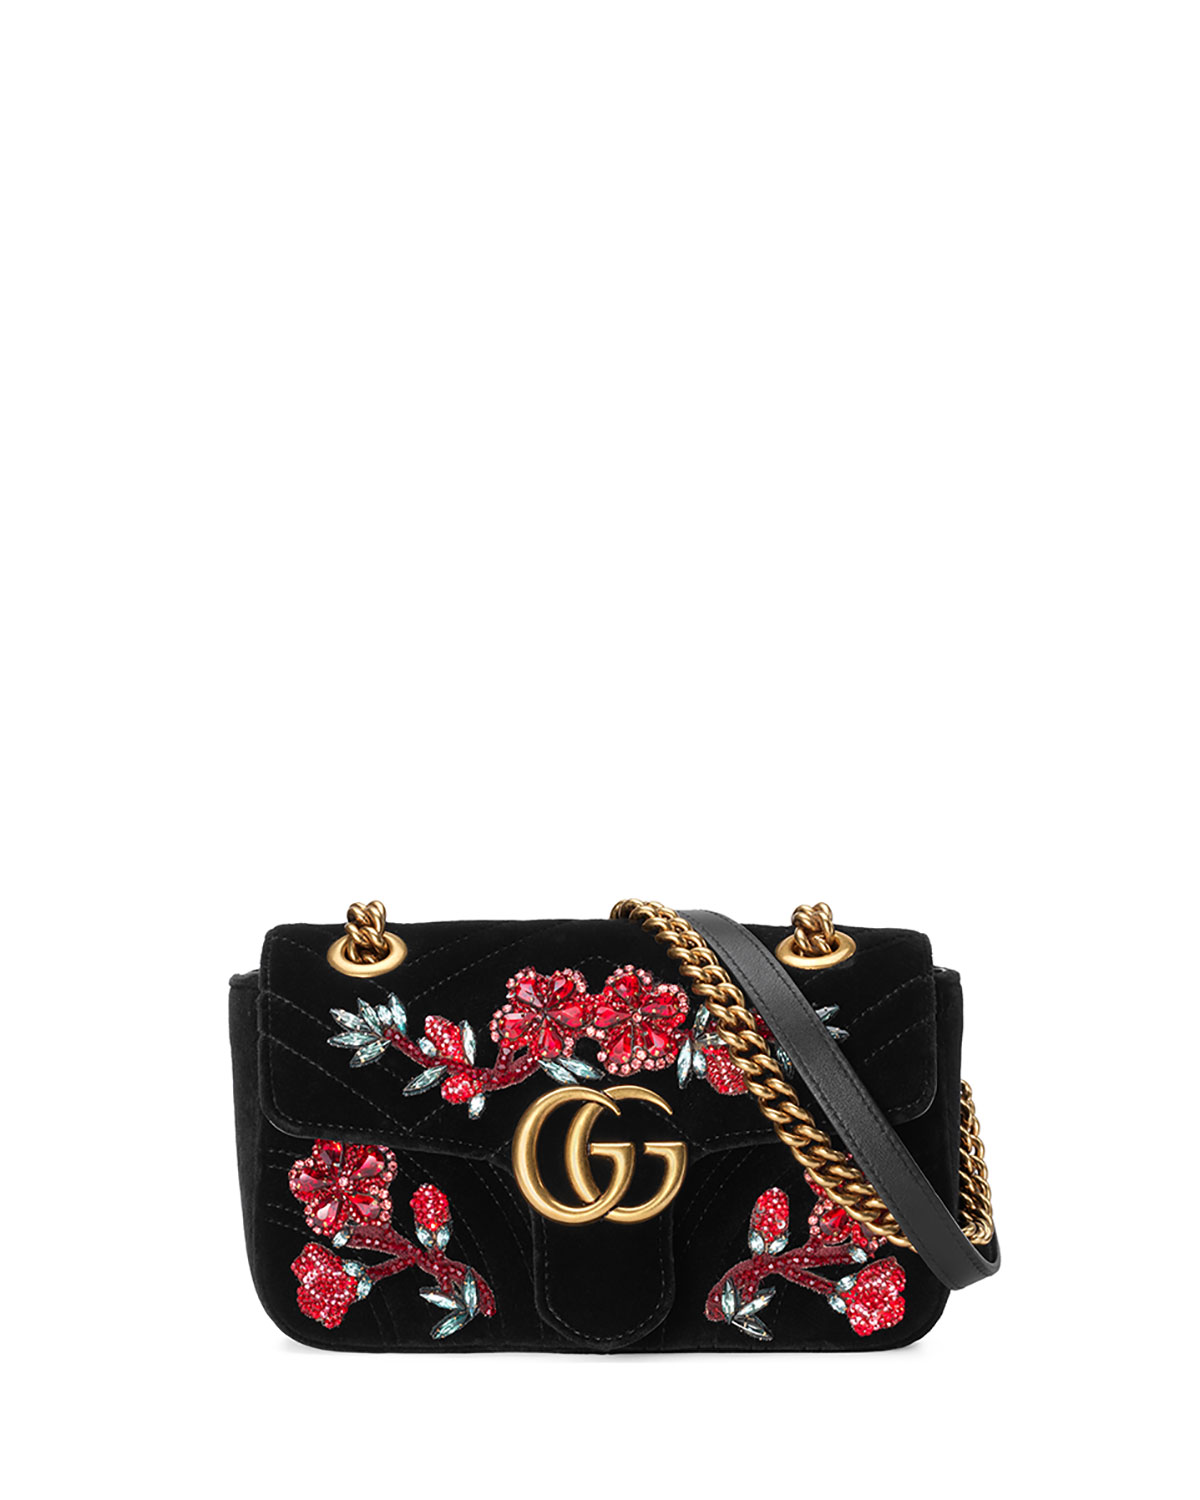 a9f26c5f4 Gucci GG Marmont Mini Velvet Shoulder Bag, Black | Neiman Marcus